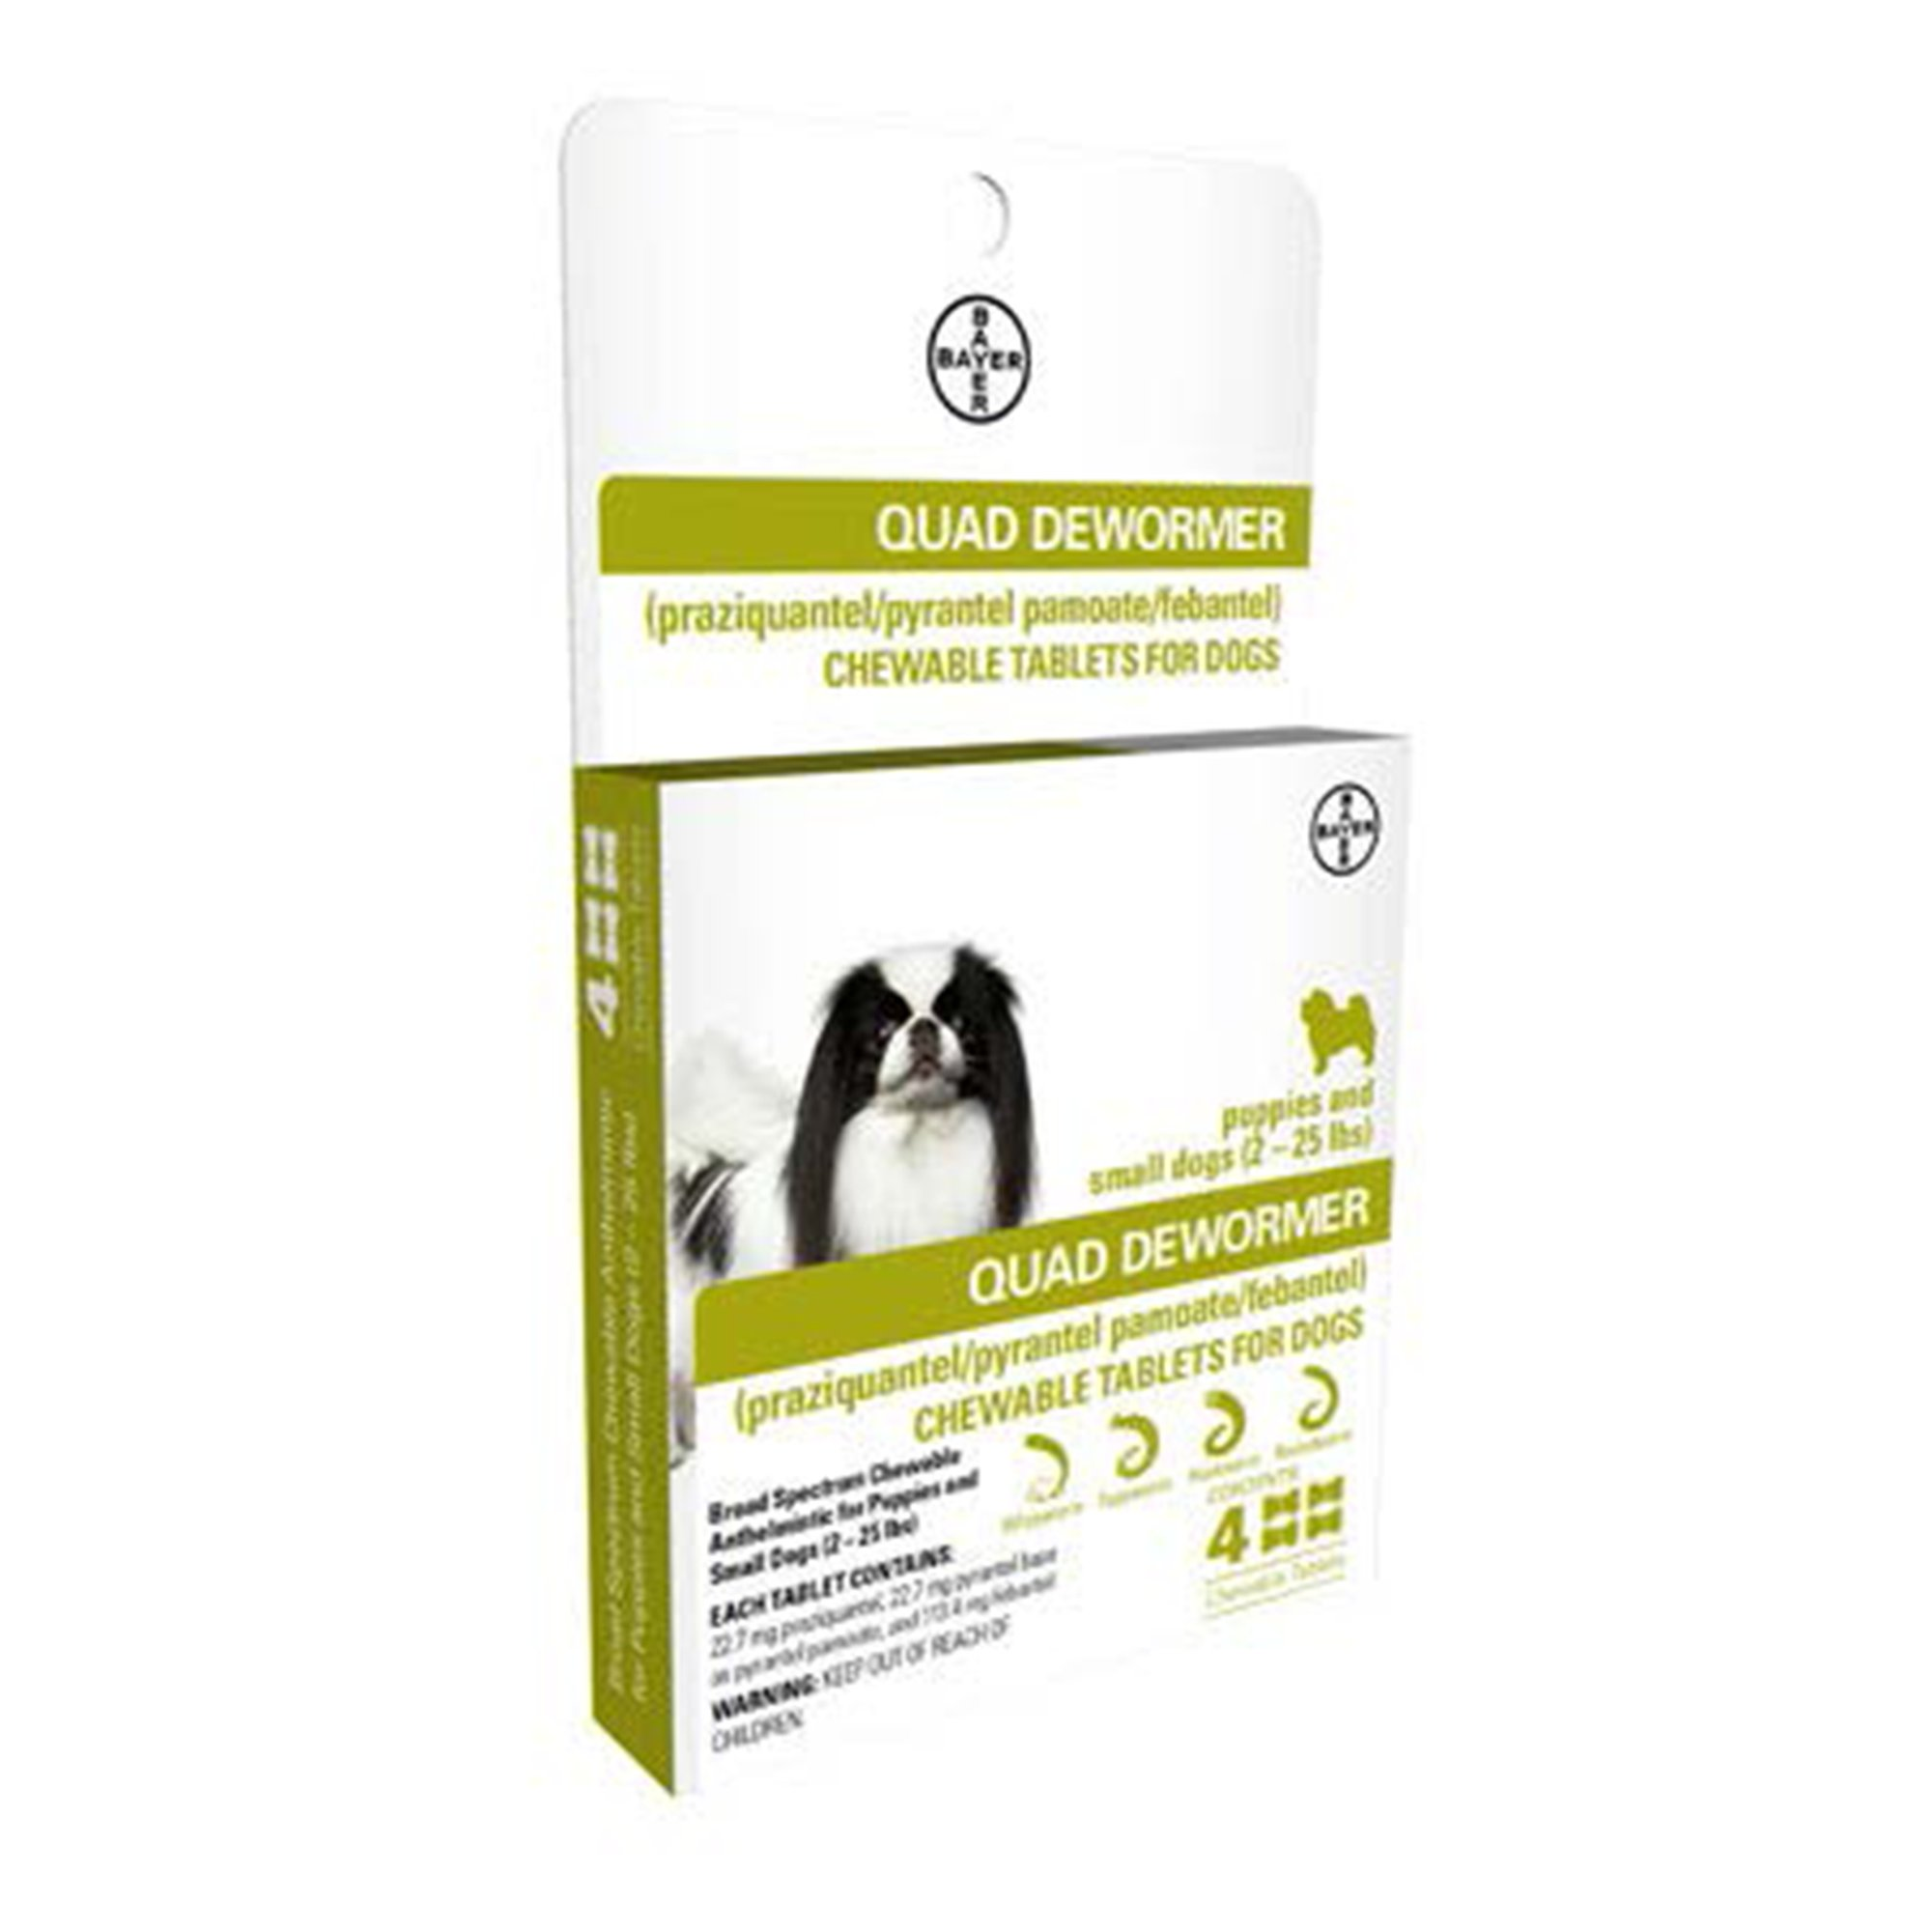 Bayer Quad Dewormer Tablets for Dogs 2-25lbs, 4 pack   Petco